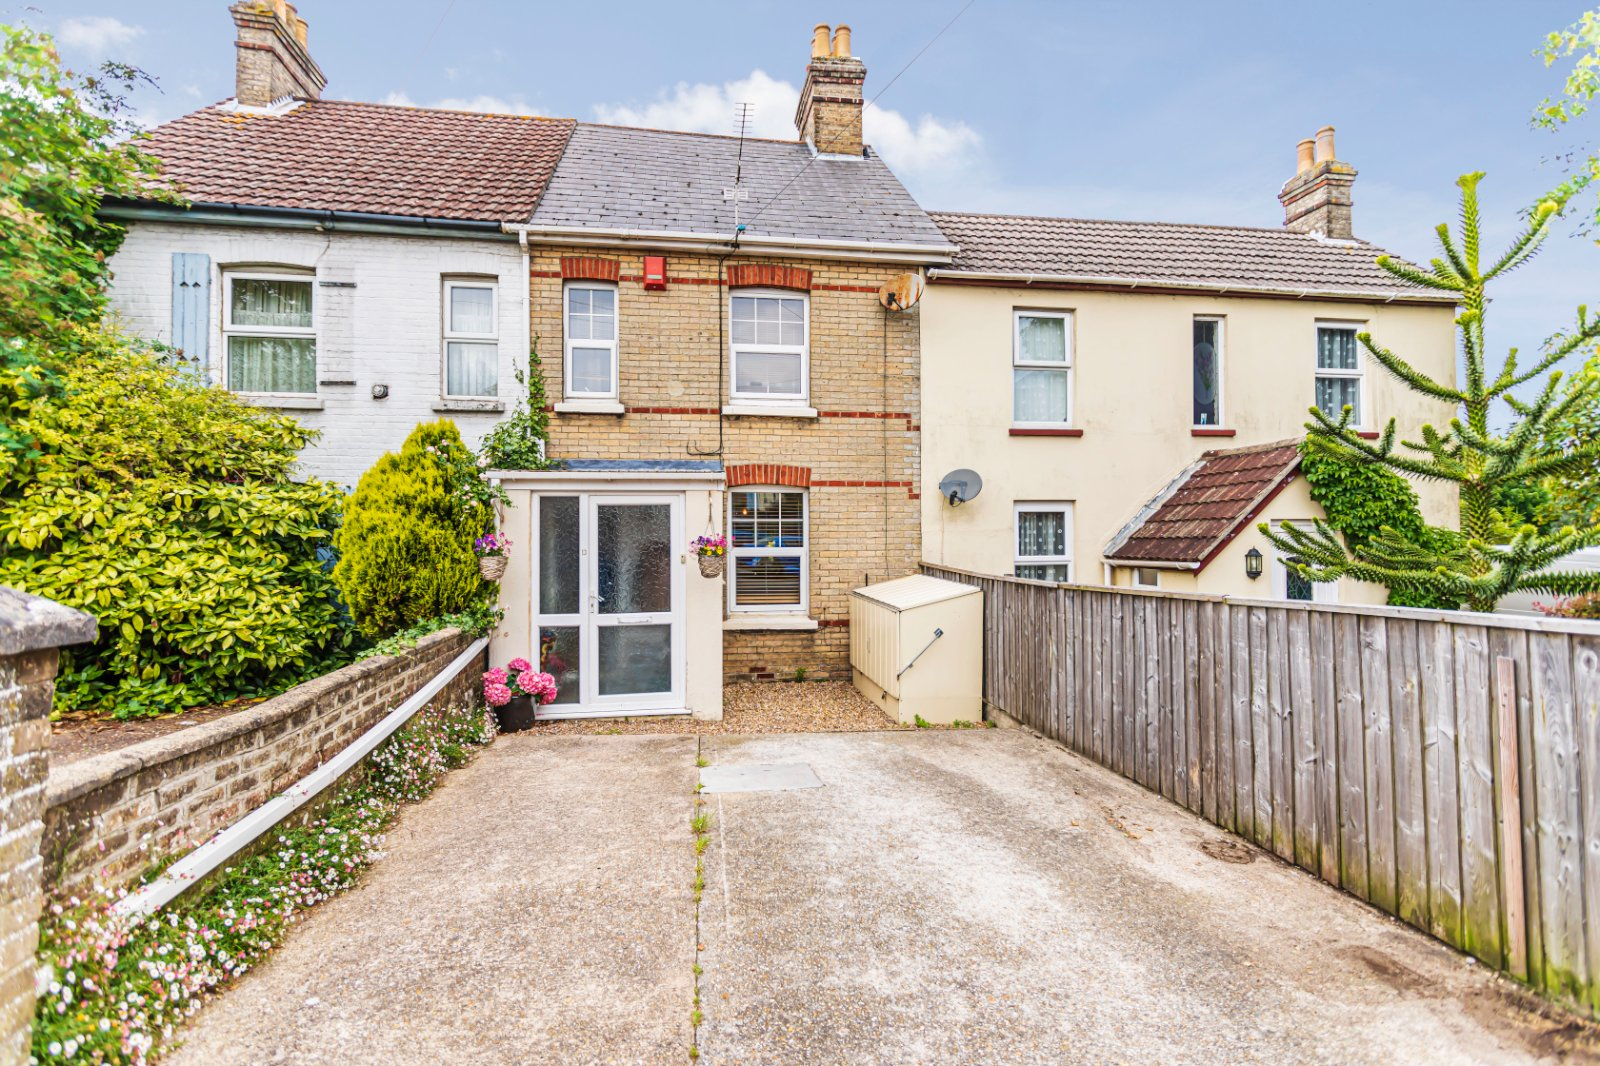 3 bed house for sale in Uppleby Road, Parkstone  - Property Image 2